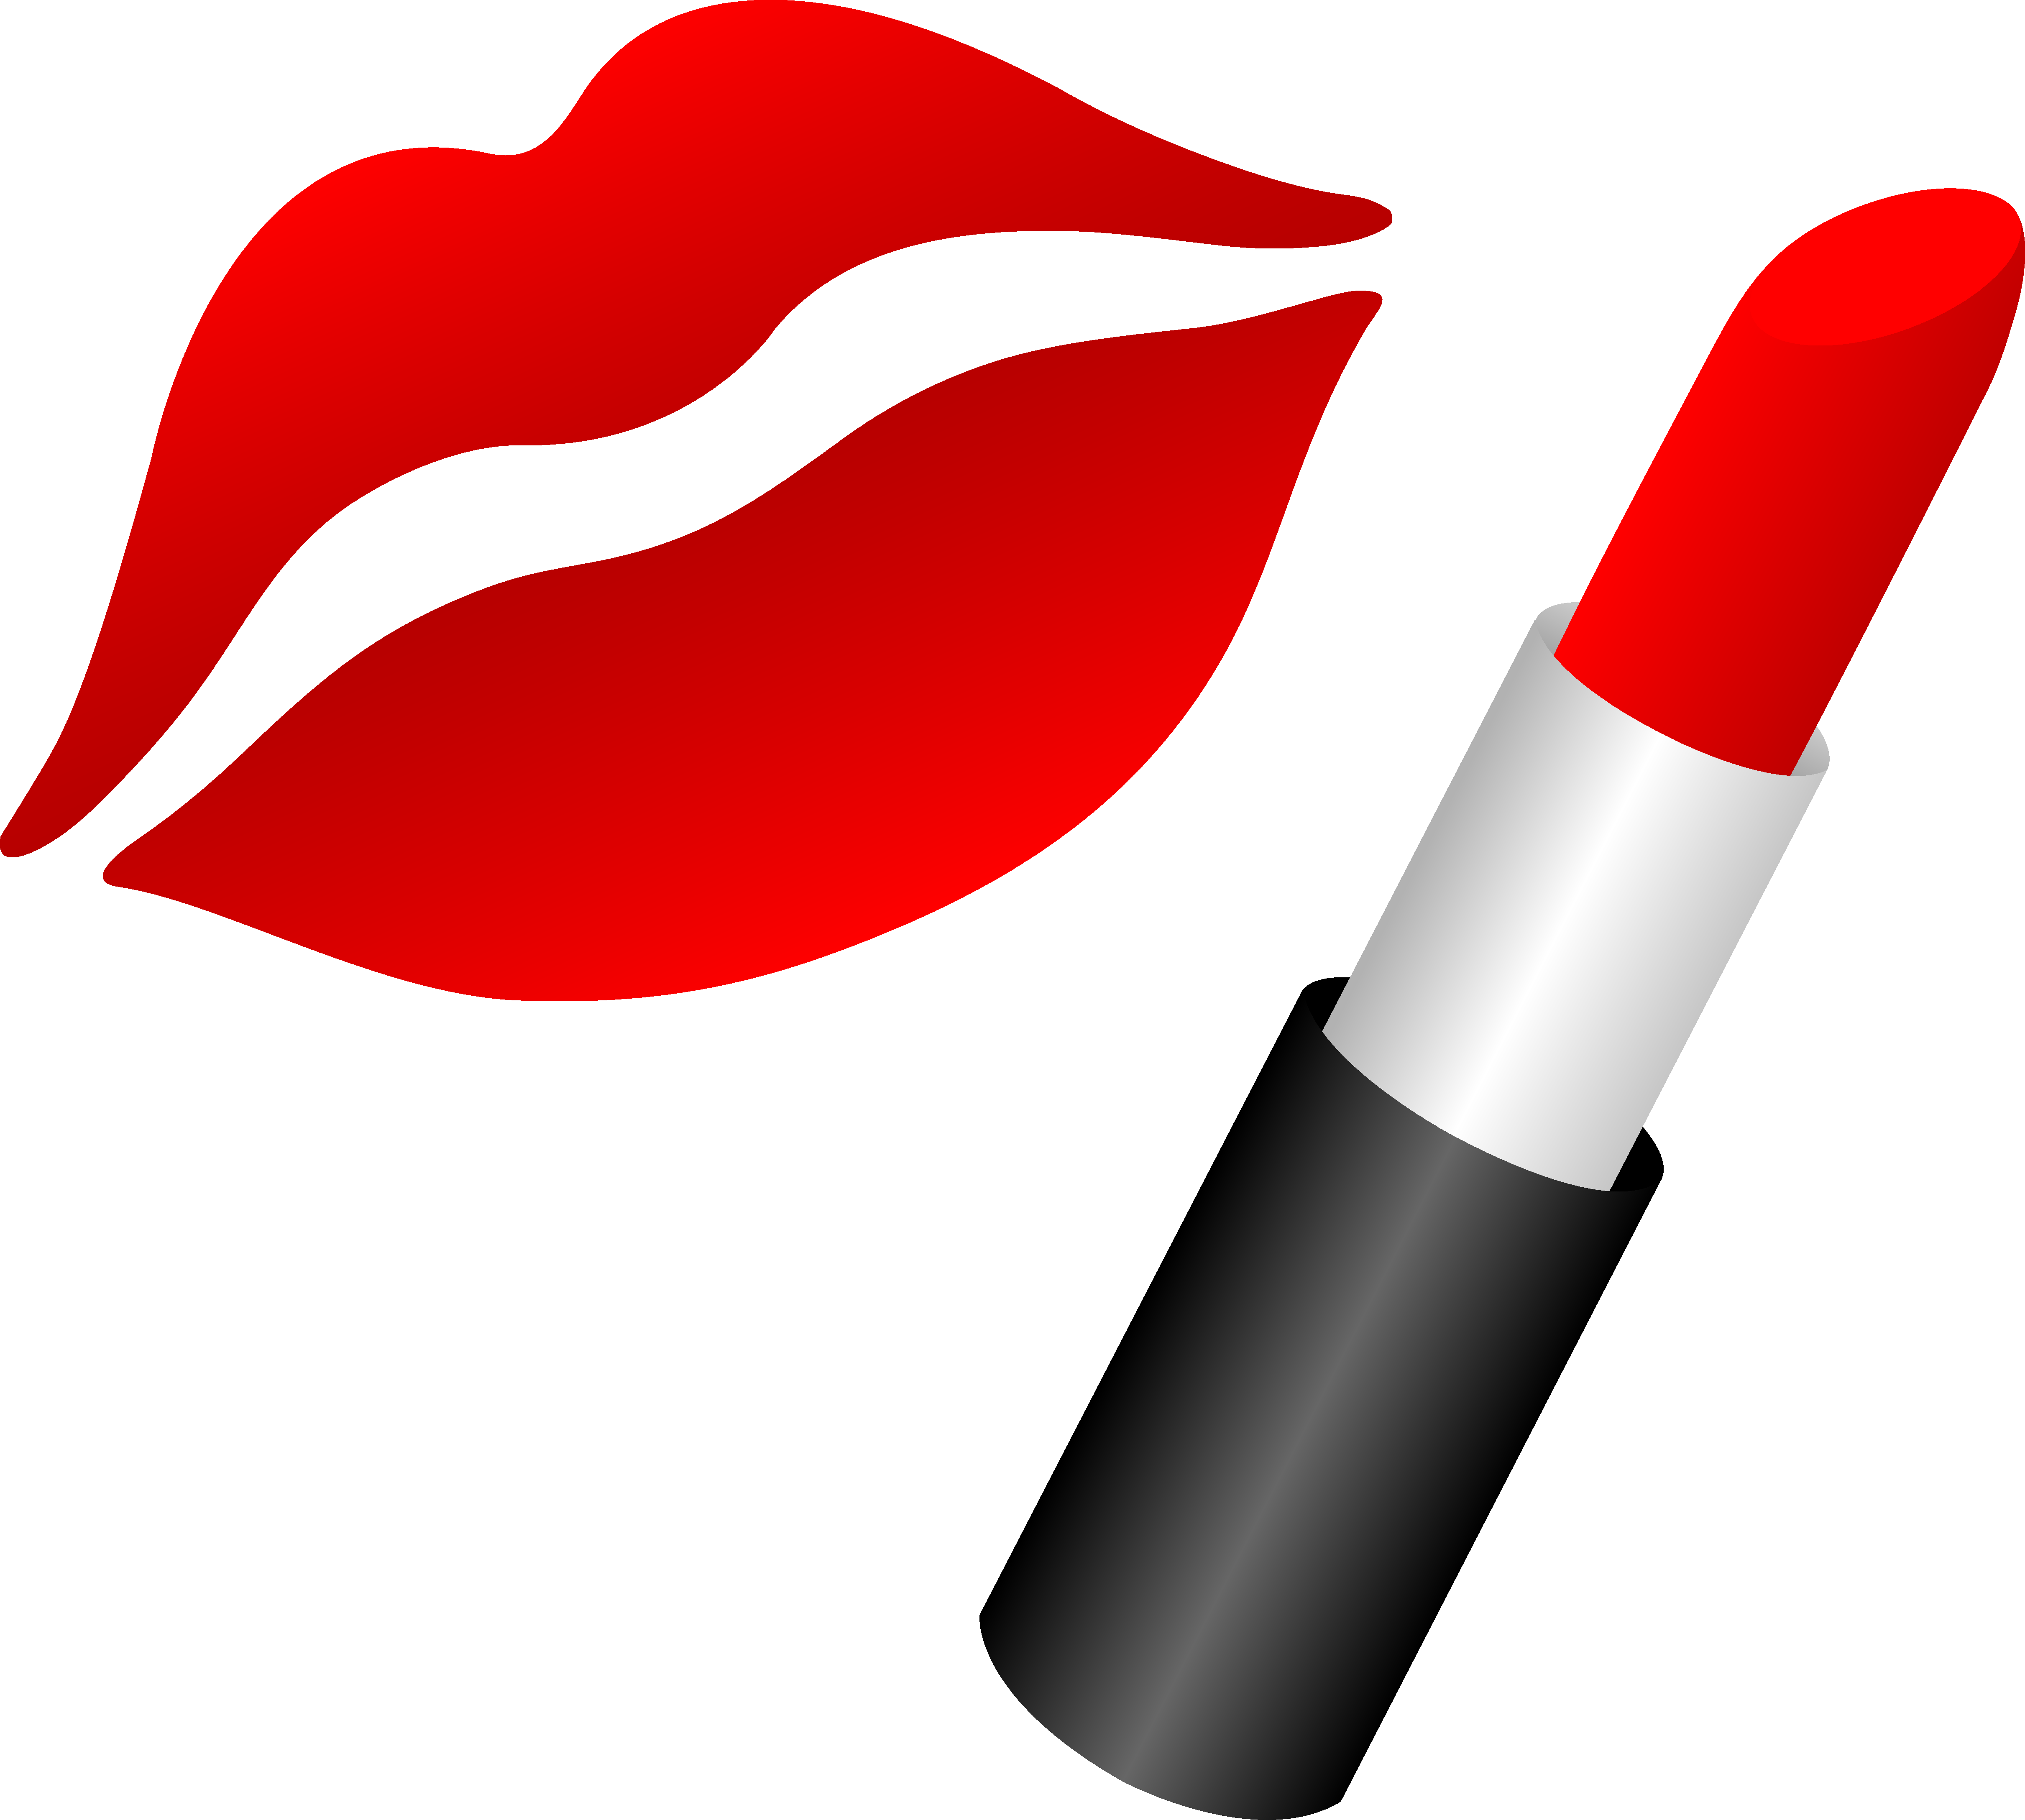 4842x4352 Lips With Red Lipstick Free Clip Art